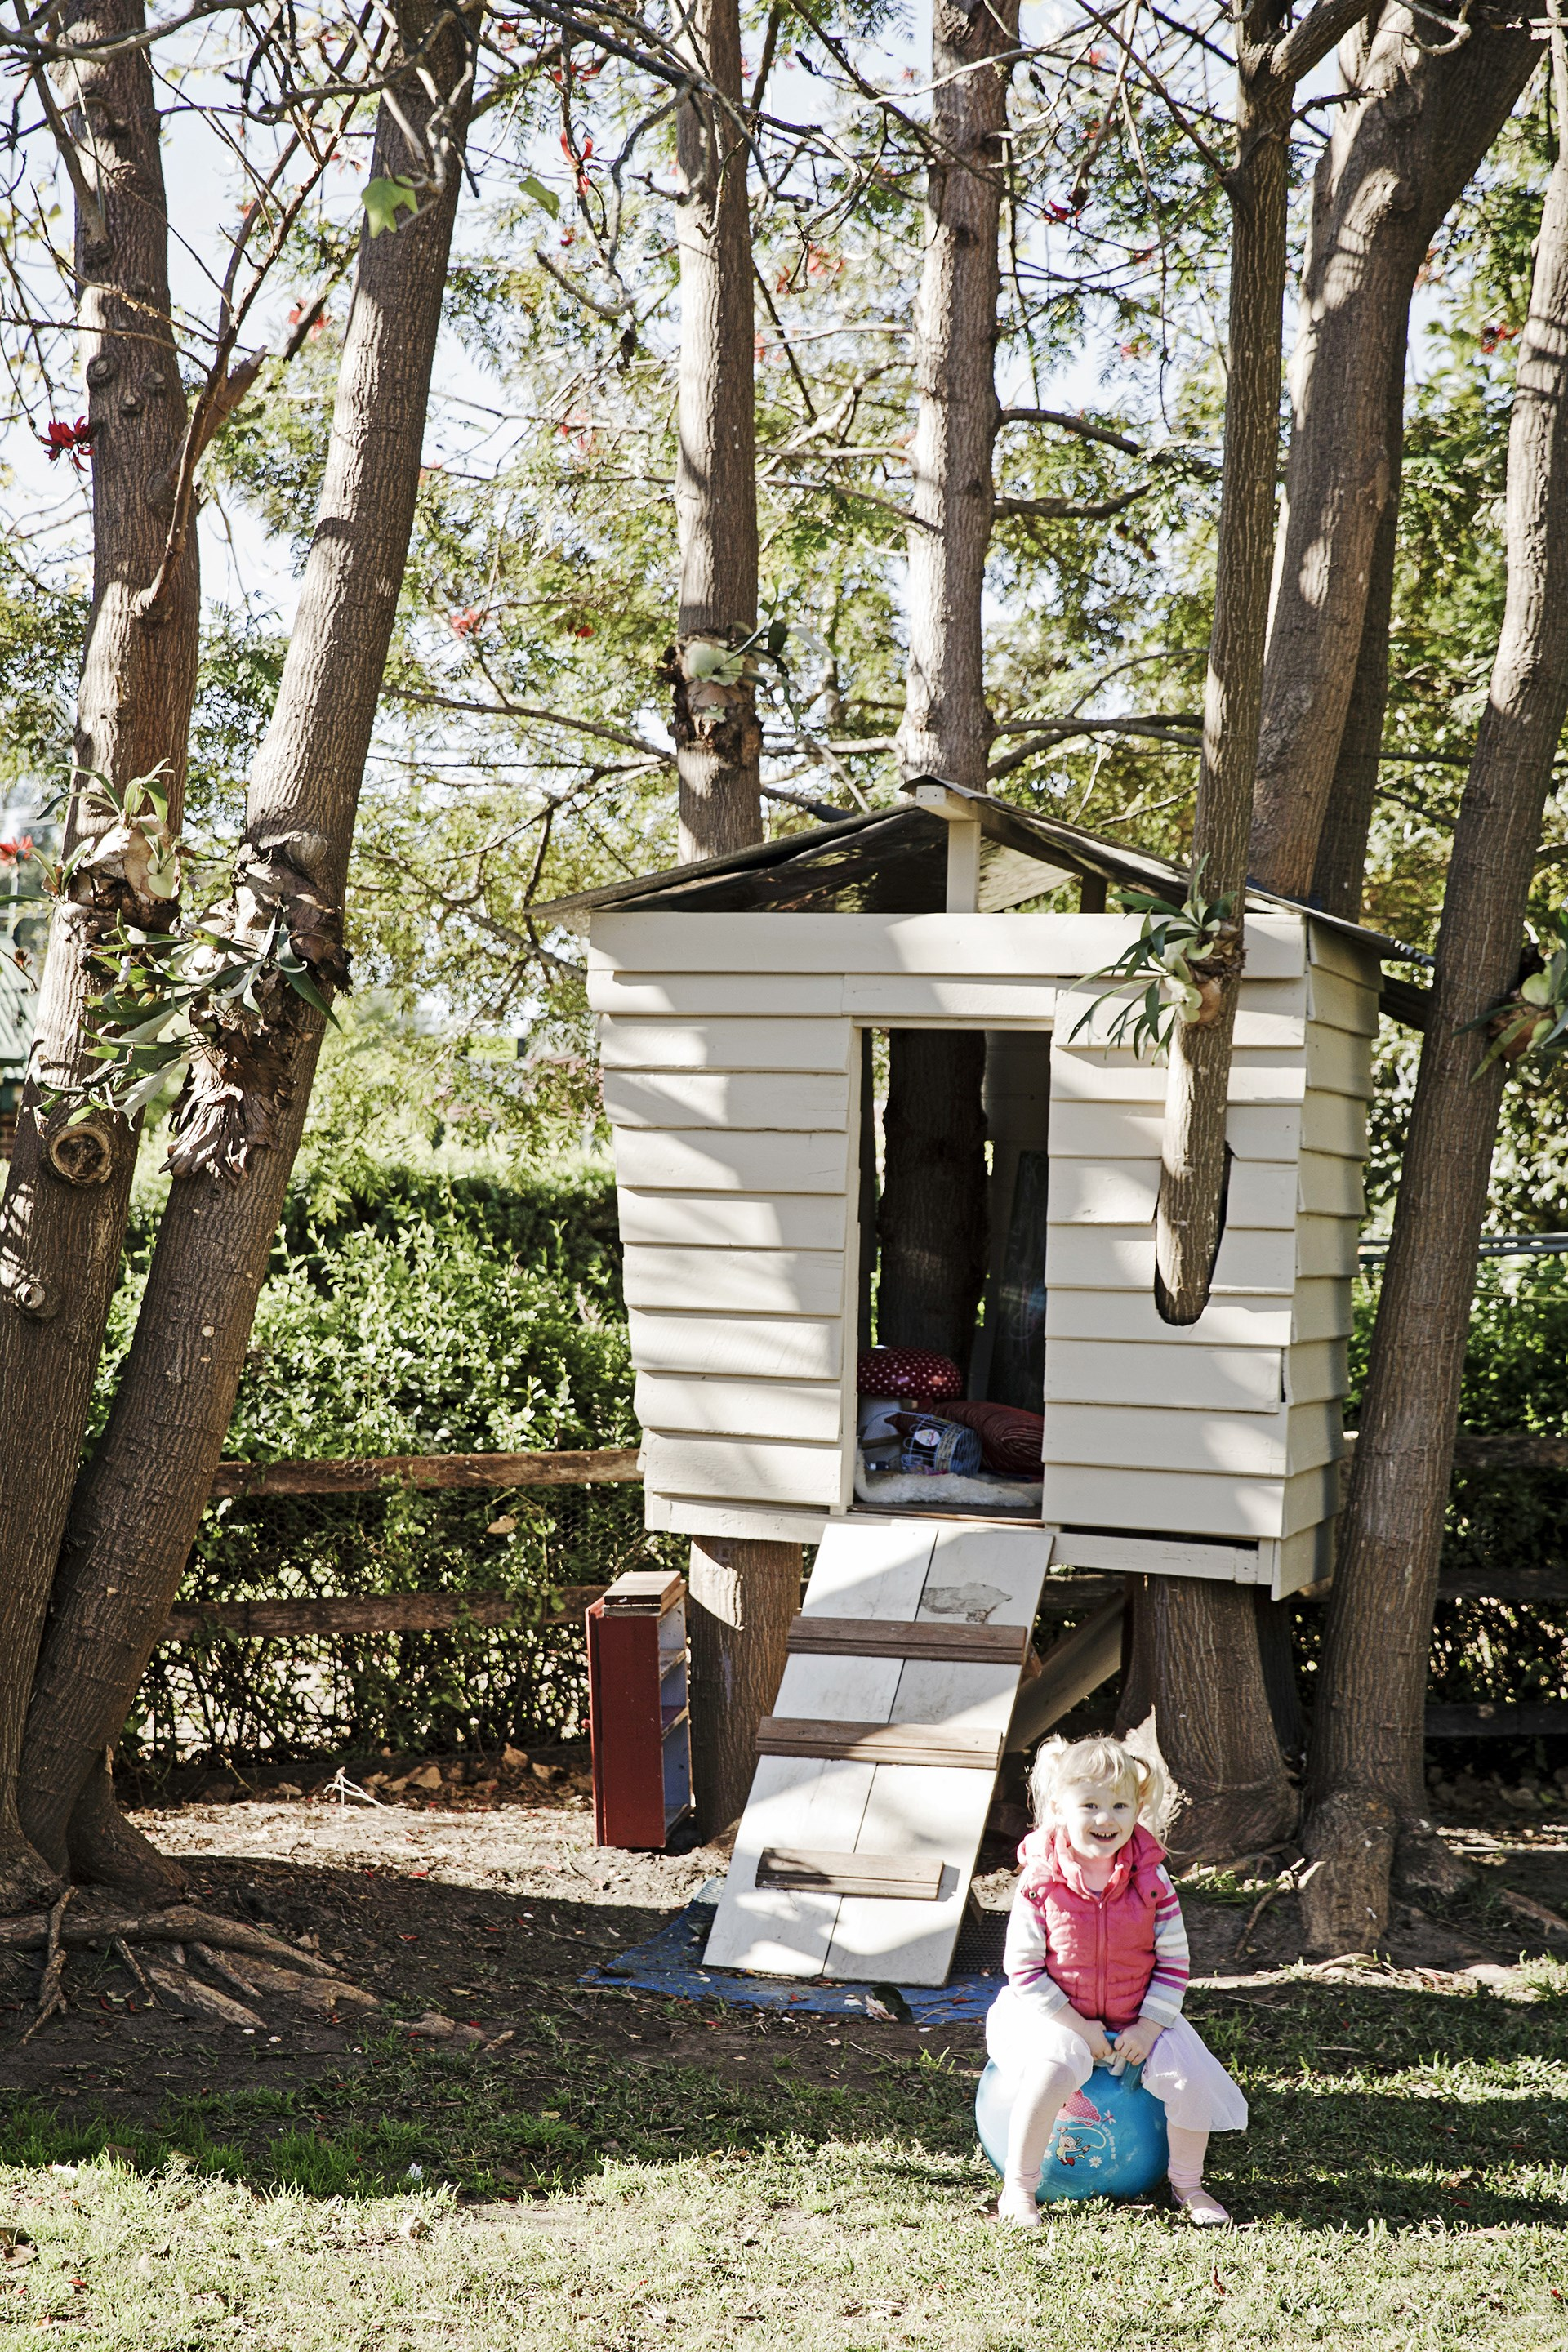 "After renovating the house, Jodie and Simon used the leftover wood to build a cubbyhouse. ""Our daughter Bailey May loves dragging Poppy, our dog, up there,"" says Jodie. Take the tour through their [charming rustic cottage](http://www.homestolove.com.au/gallery-jodie-and-simons-rustic-cottage-renovation-1520/?utm_campaign=supplier/